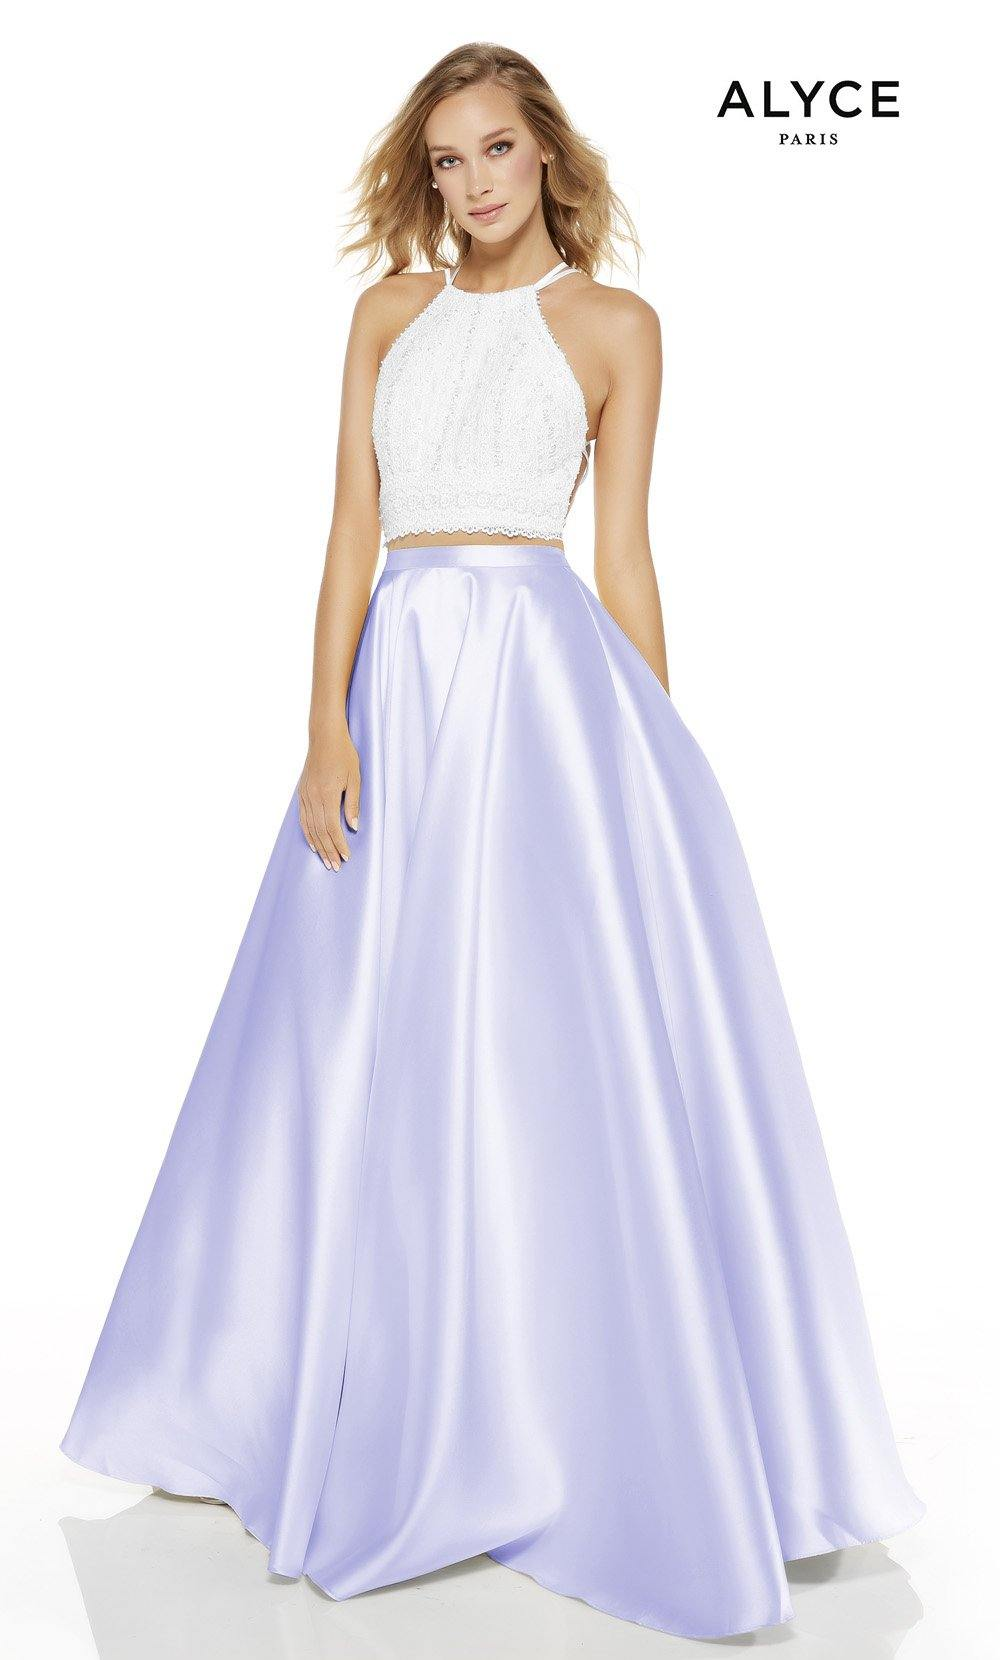 Diamond White-Lilac two piece prom dress with a halter neckline